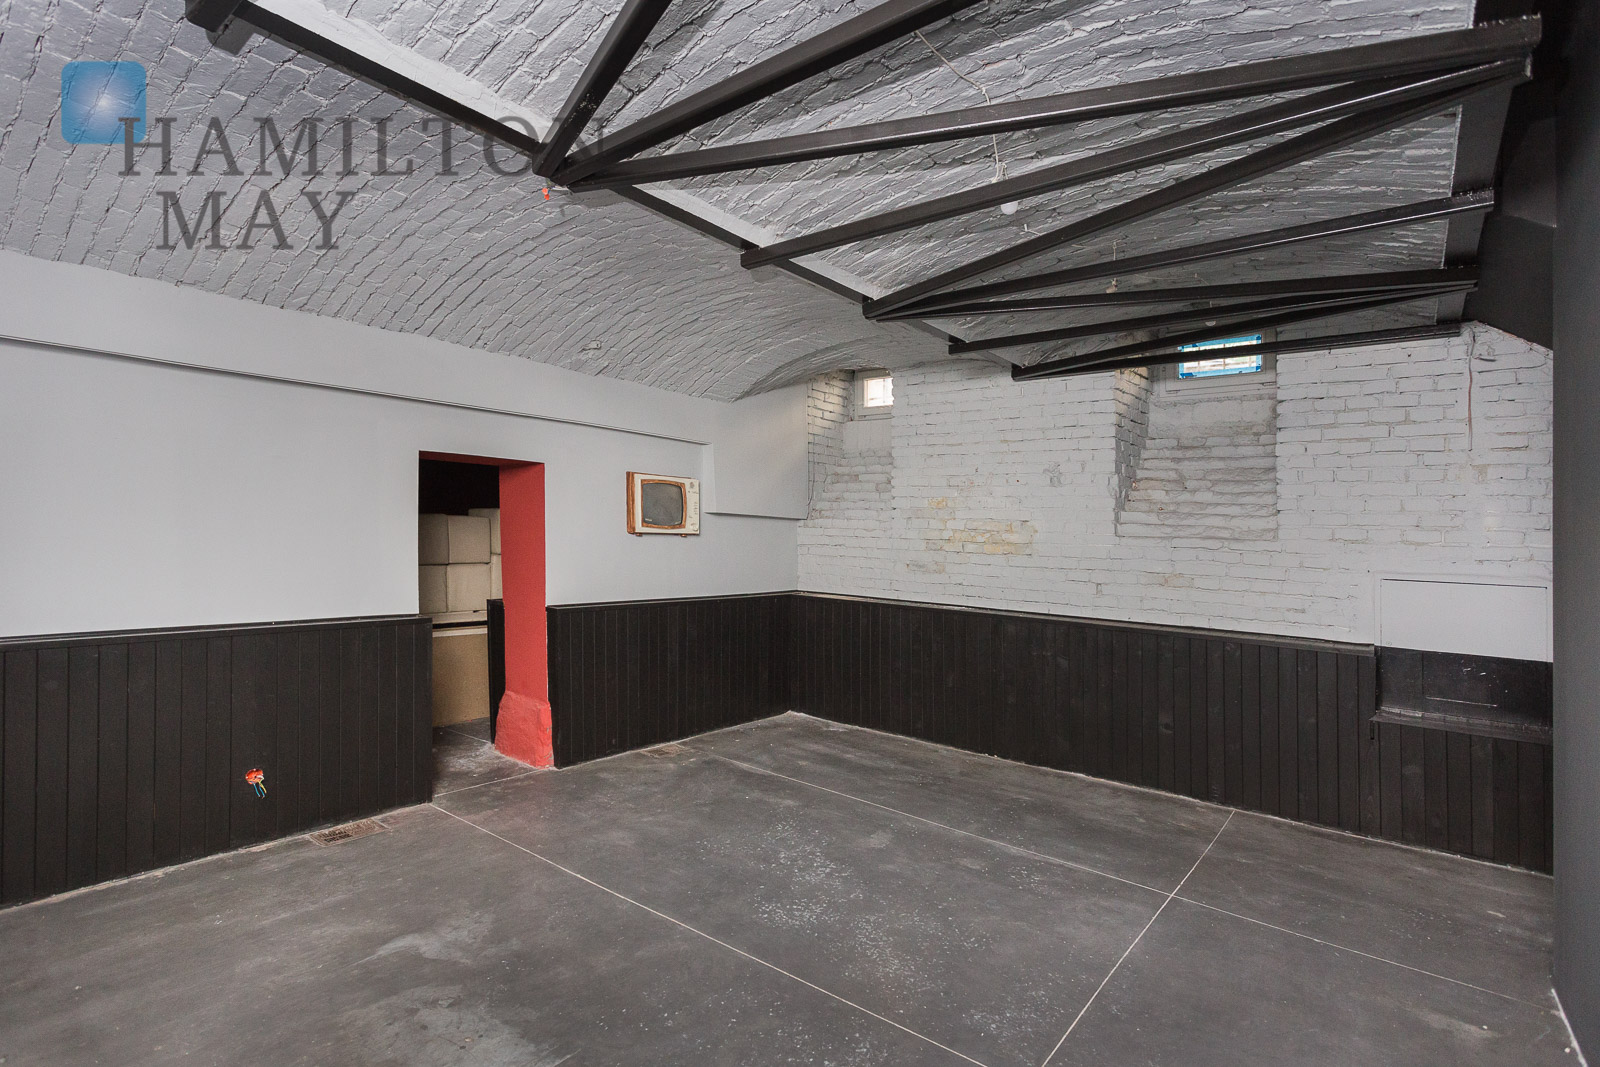 A gastronomic and commercial premises for rent in the very center. Krakow for rent